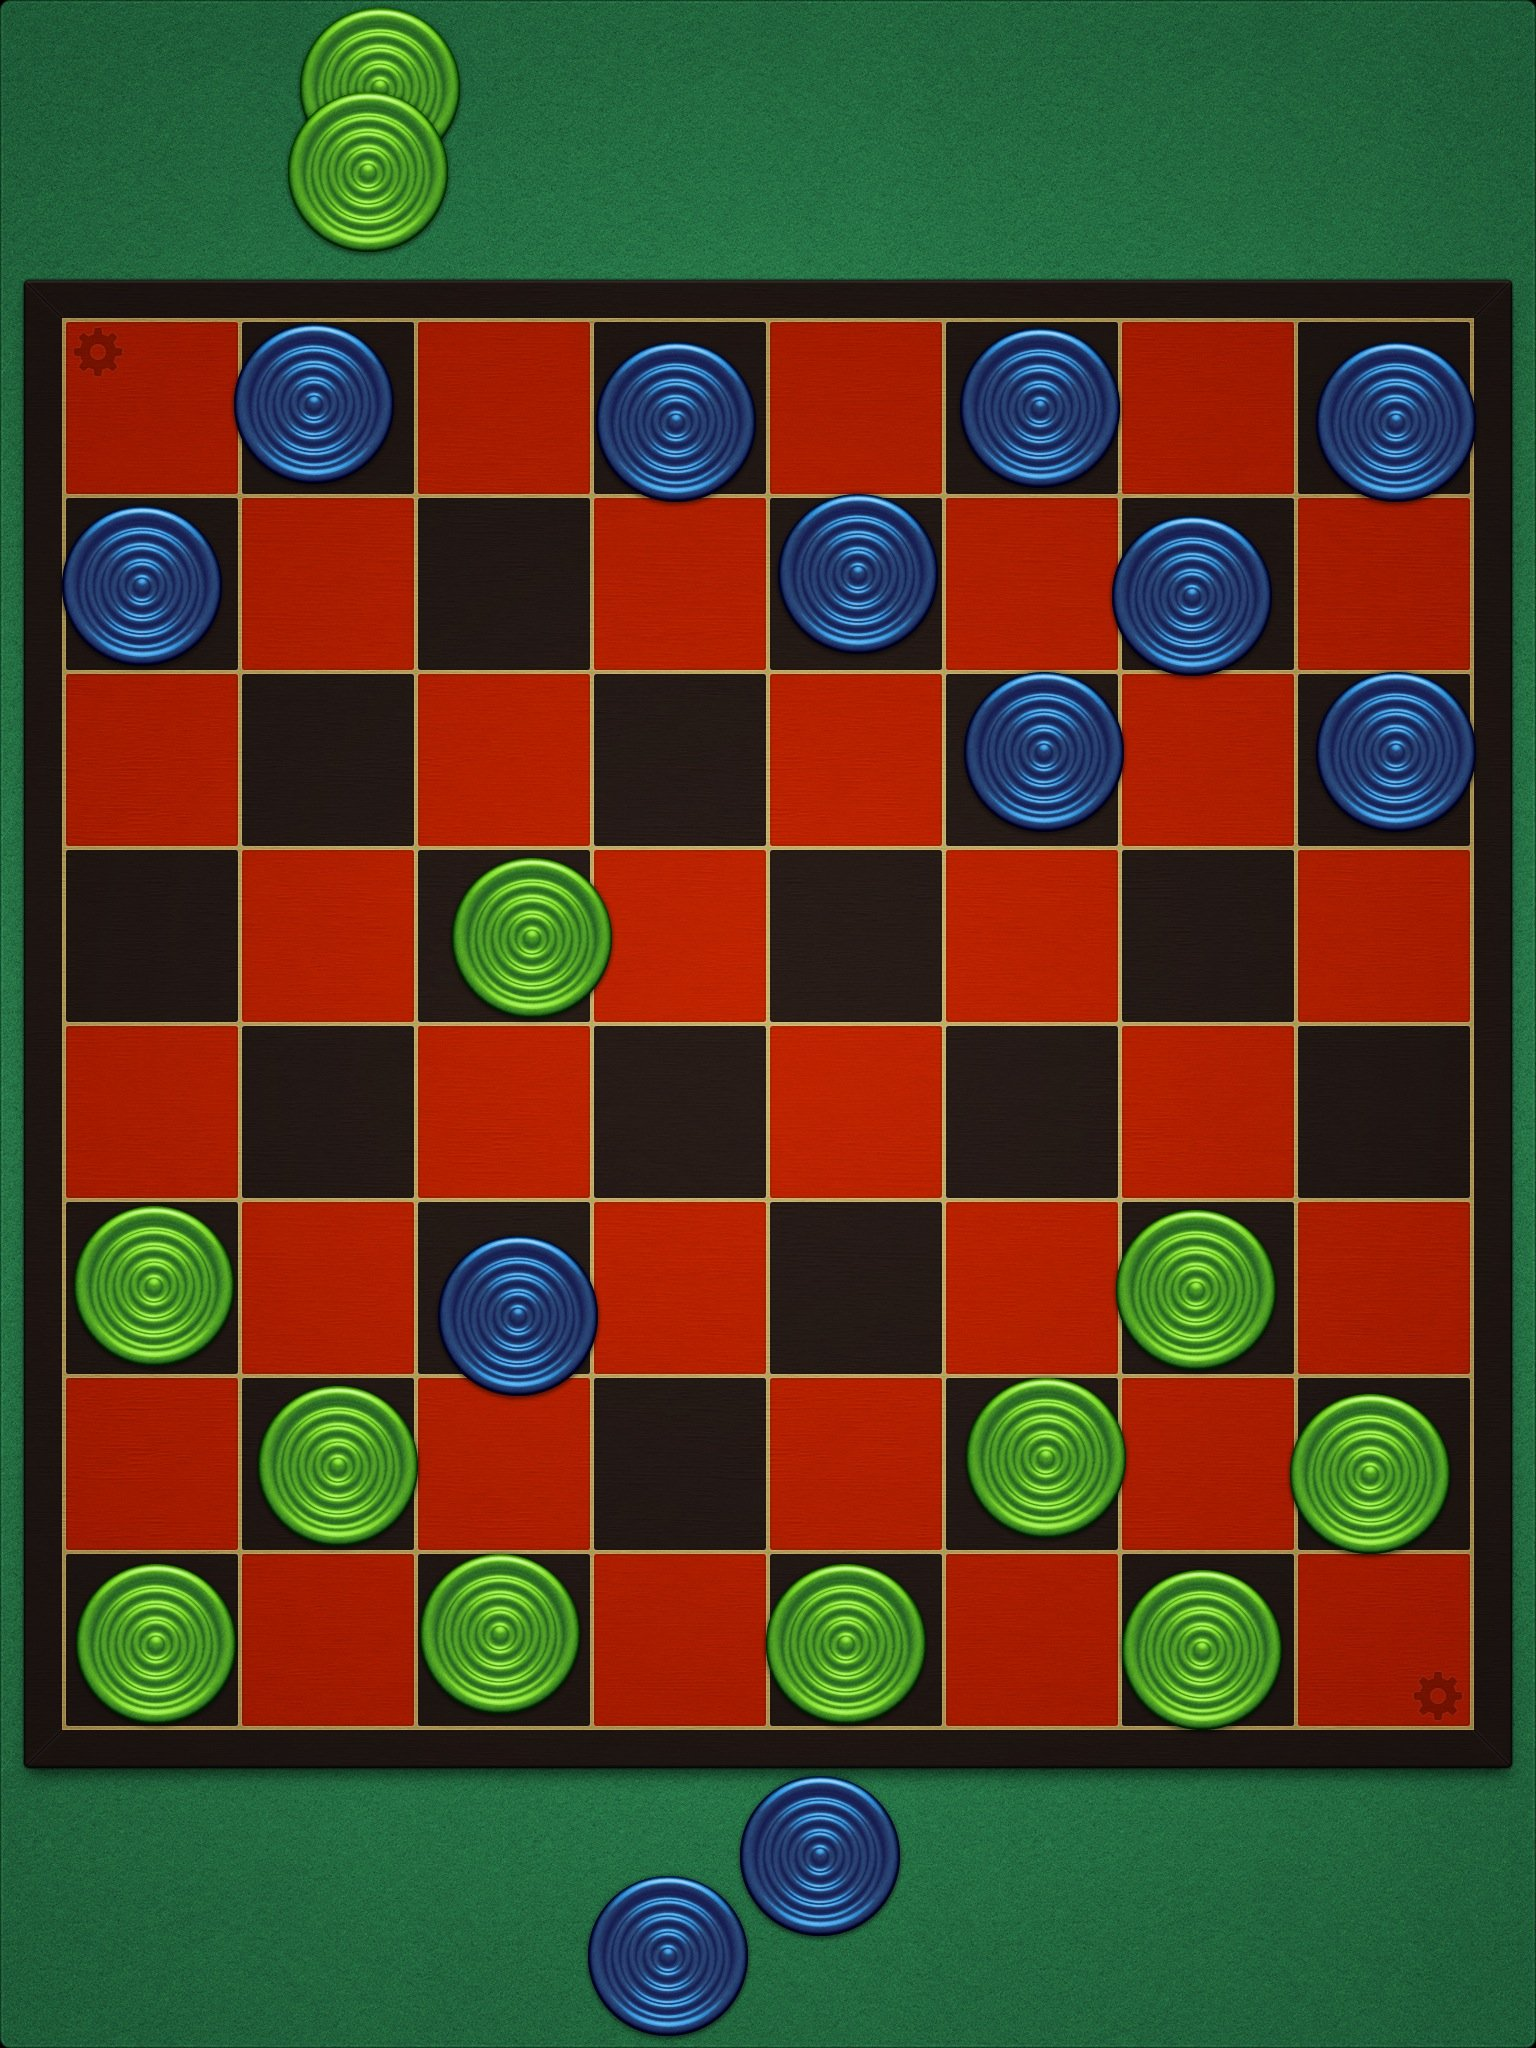 Turn Your iPad Into A Beautiful Checkers Set With Checkers — 2 Players